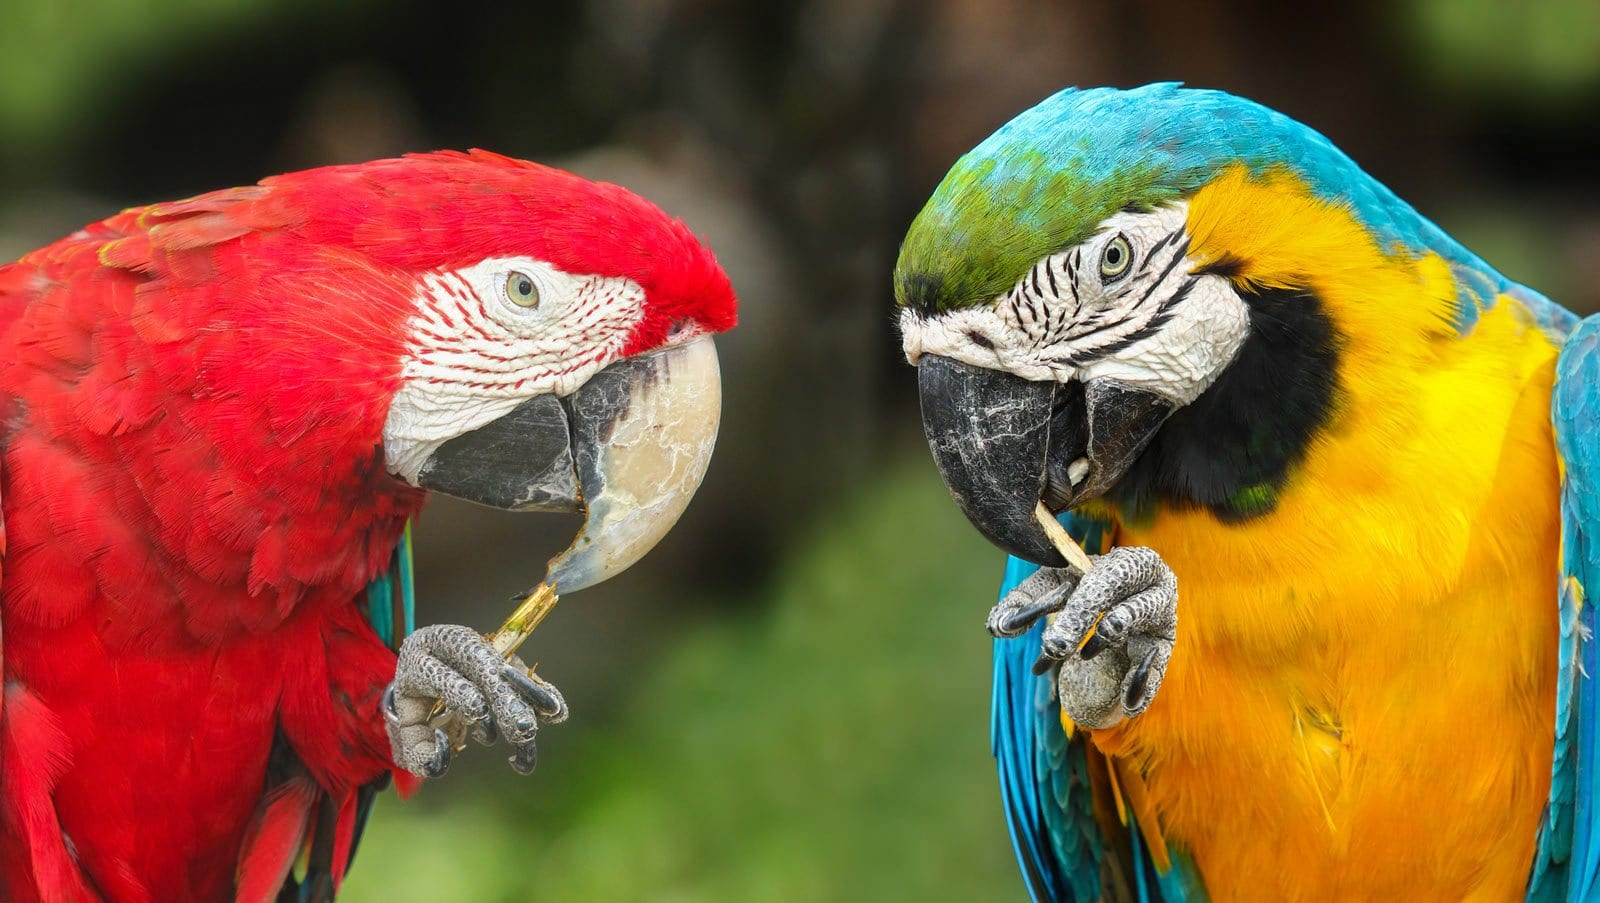 The most beautiful birds in Costa Rica include colorful macaws and parrots.